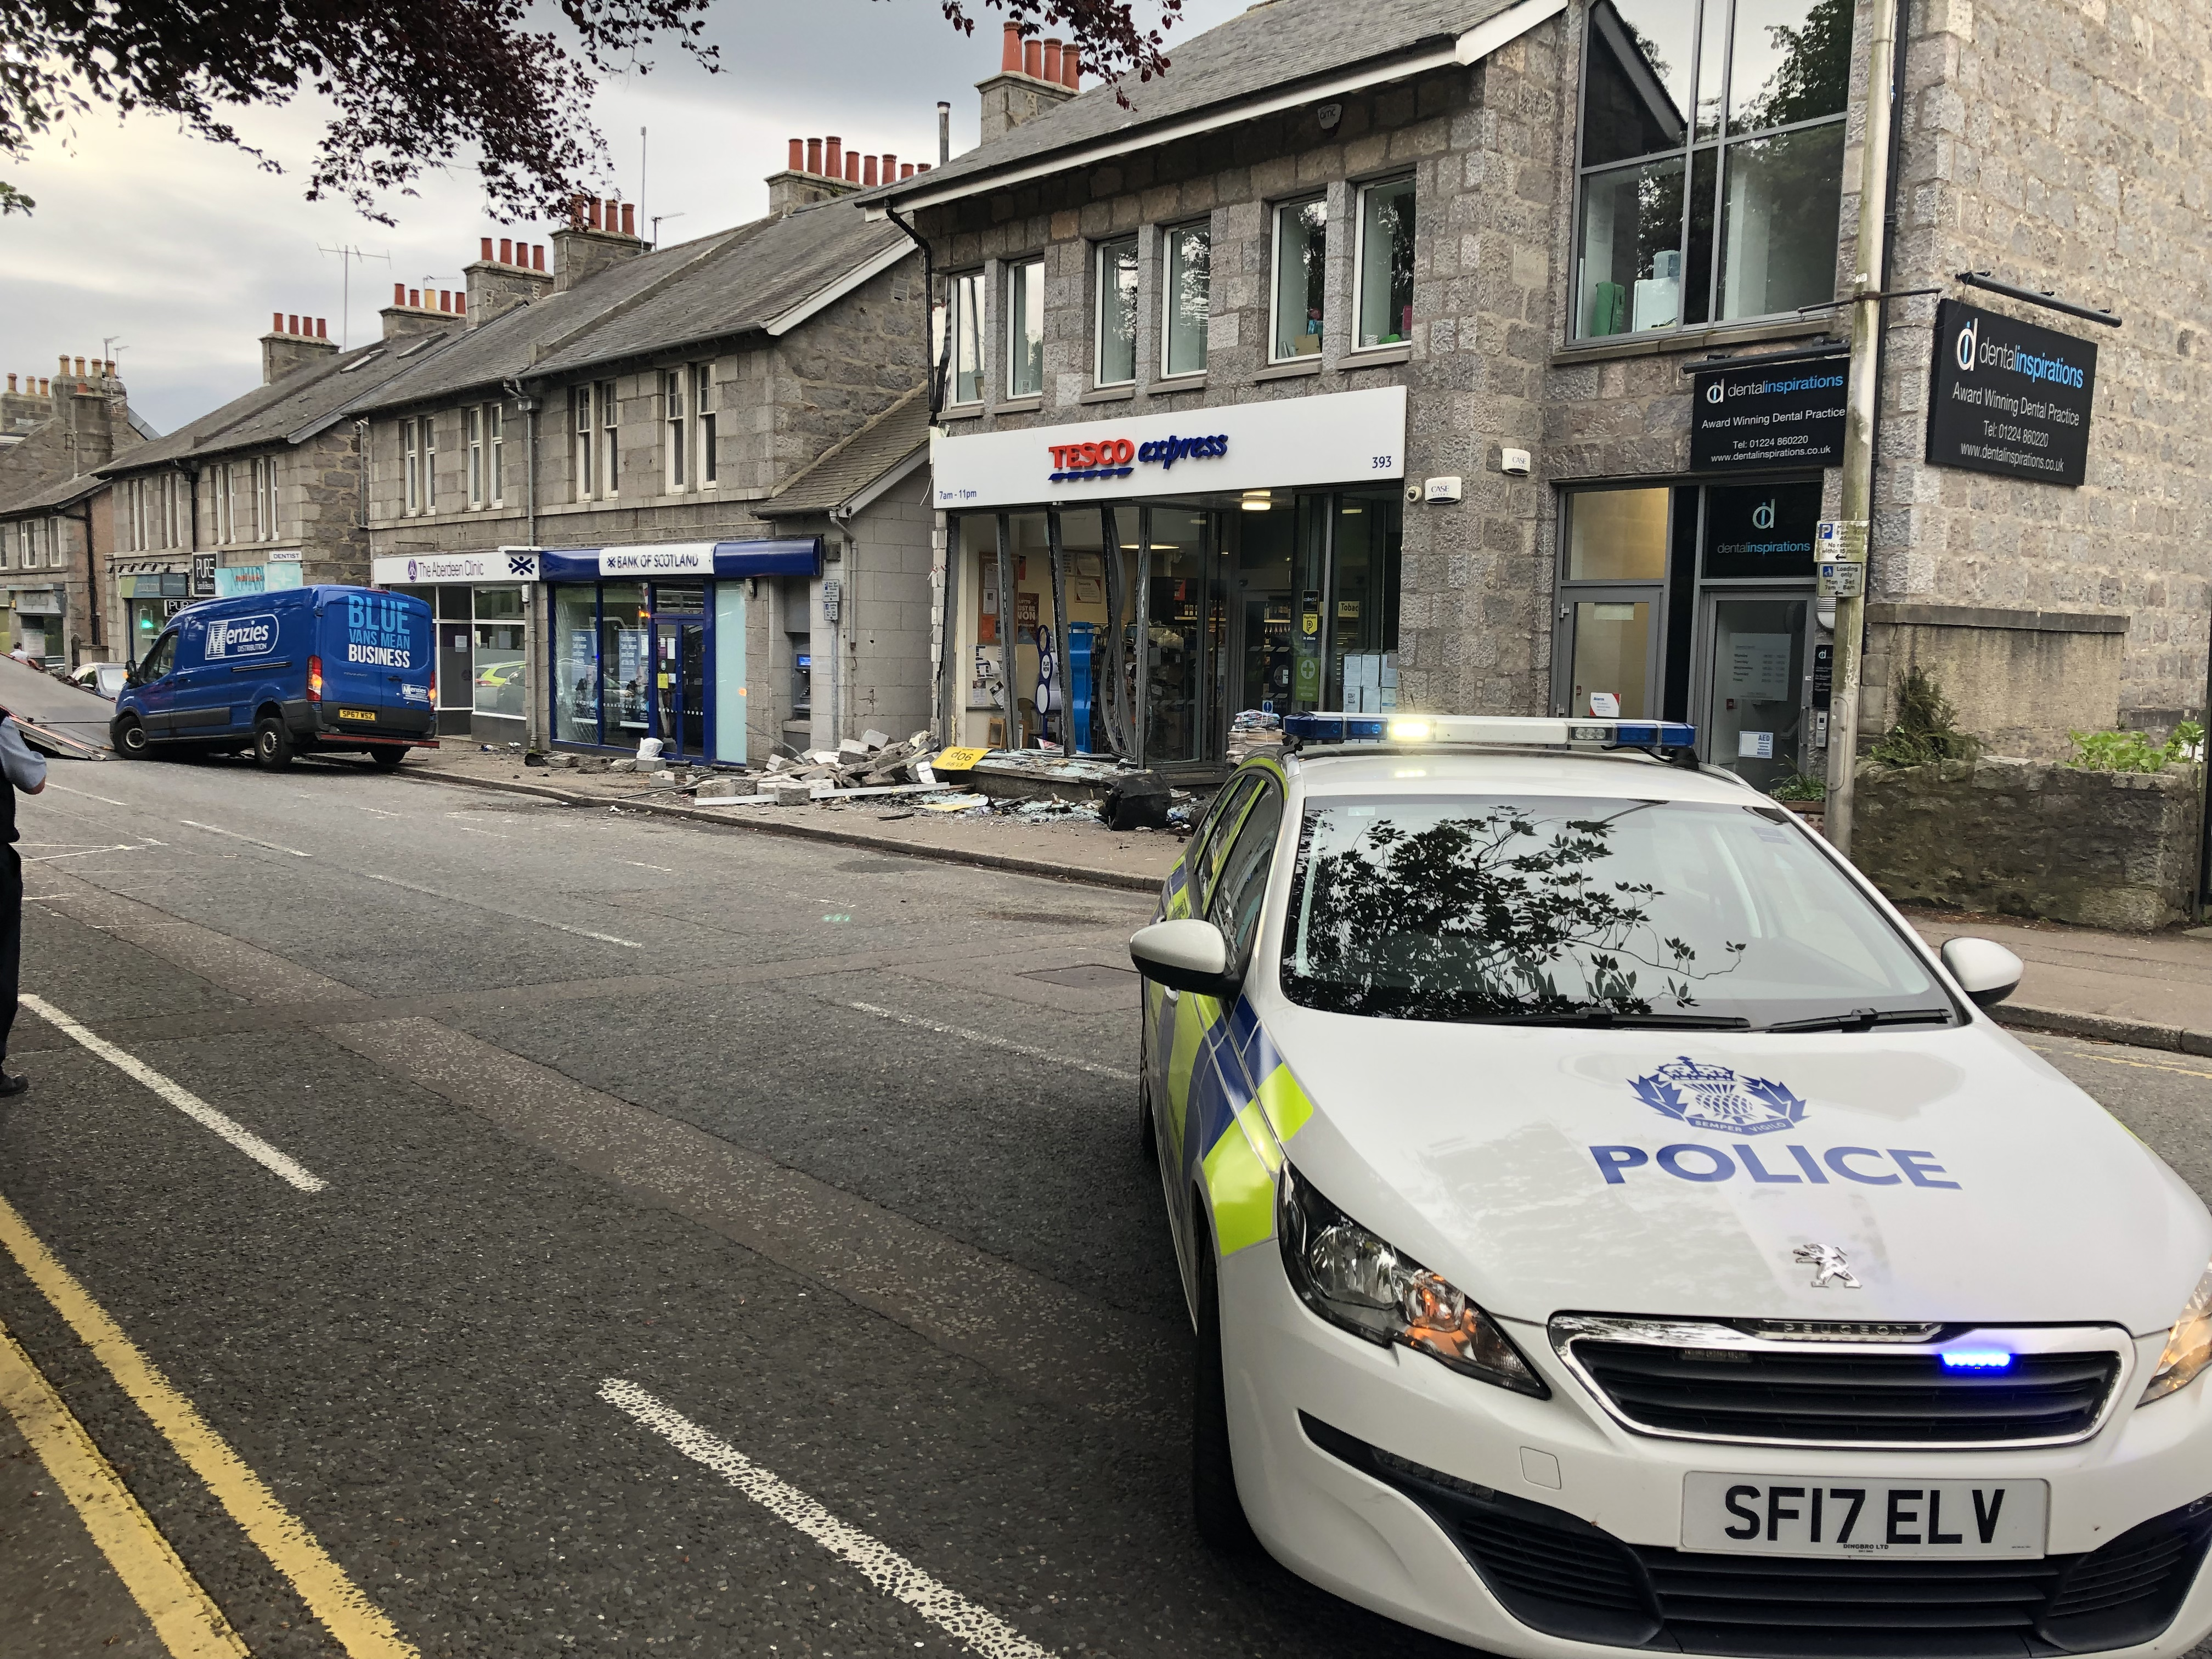 Police at the scene, with the damaged van and shop in the background.